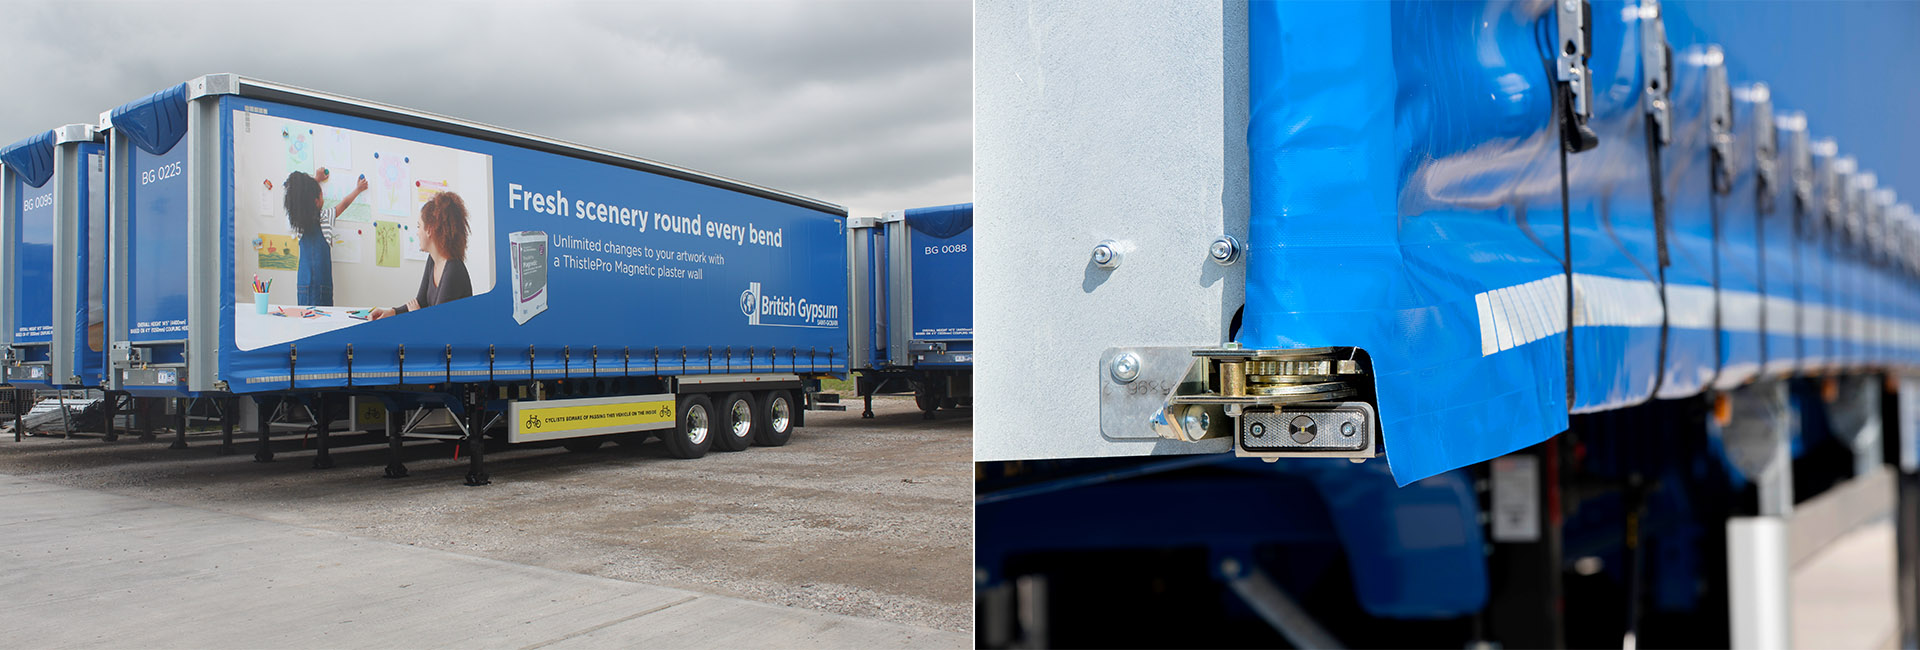 Case study - British Gypsum XPO curtainsiders - recessed ratcher curtain load securing captive rave innovation